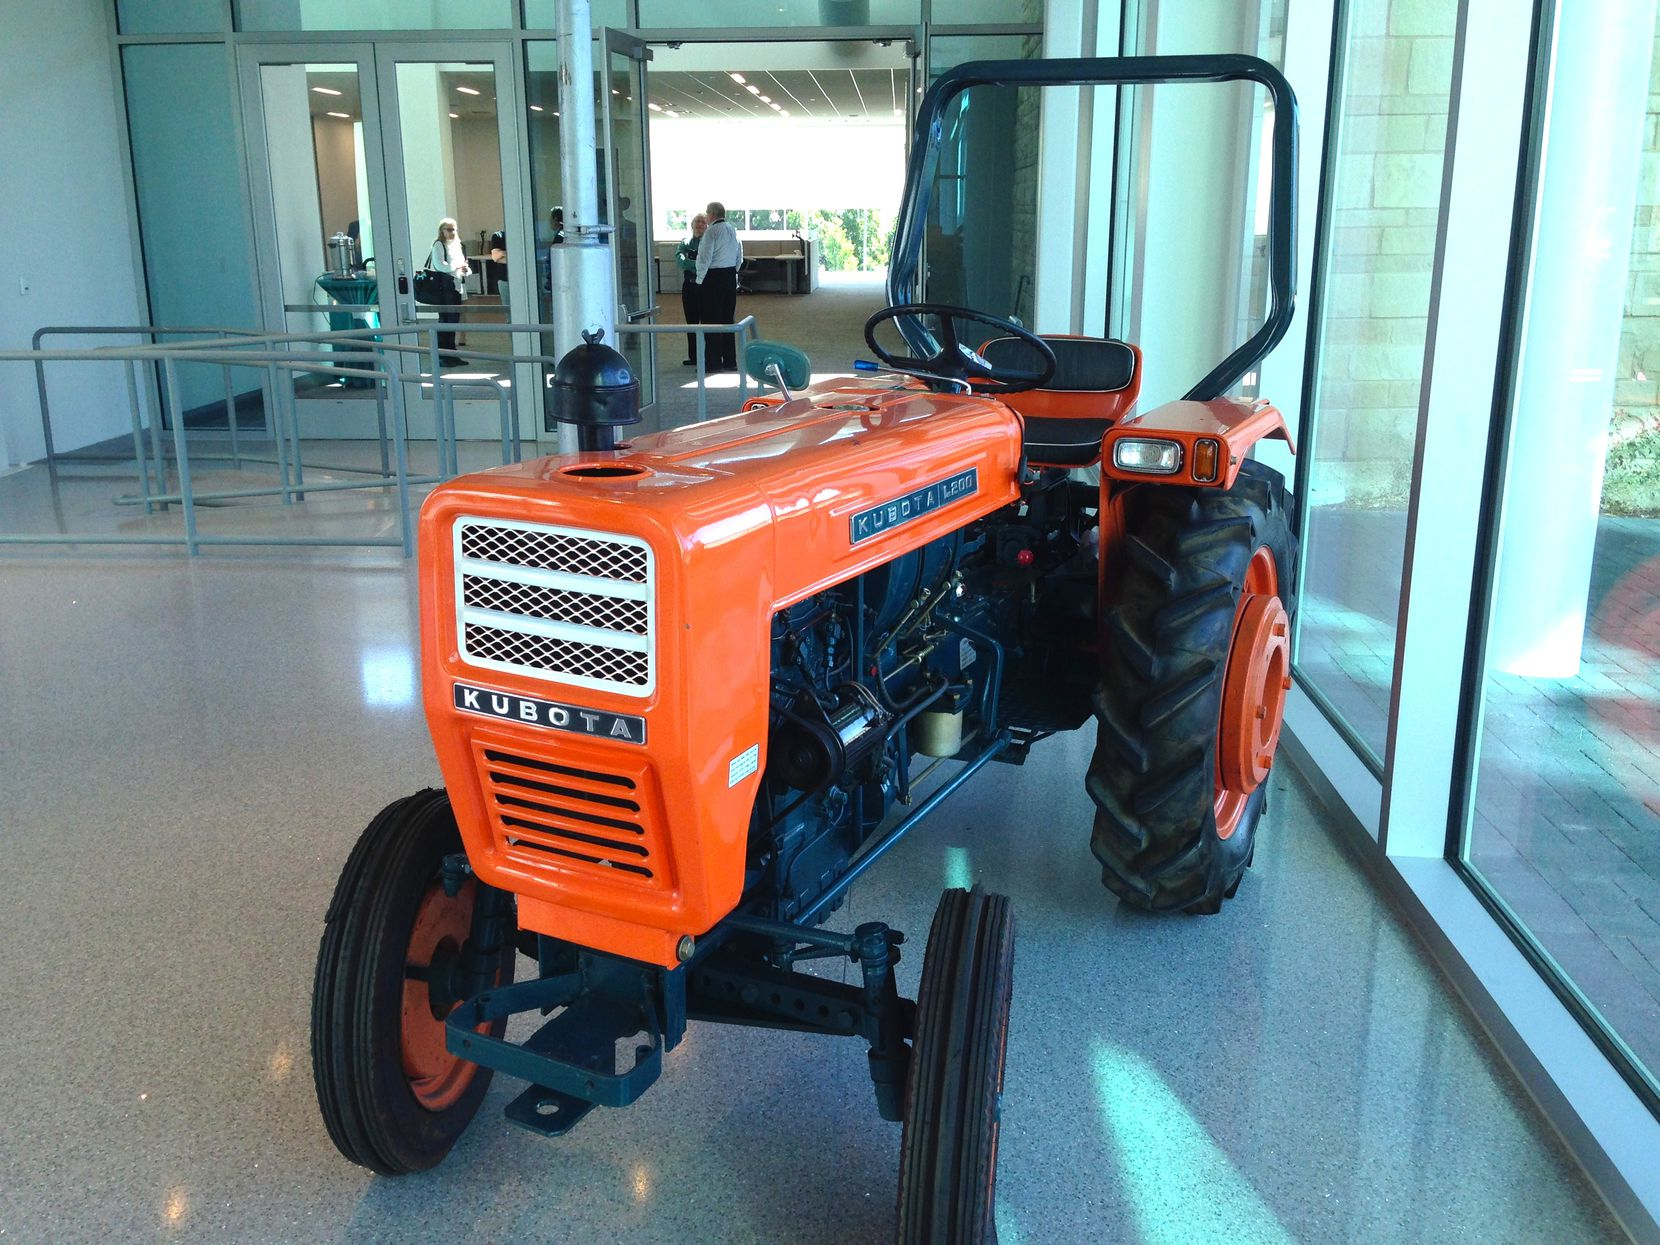 An example of the first Kubota Tractor model sold int the U.S. in 1972 - the L 200 - sits in the lobby of the company's new Grapevine headquarters.